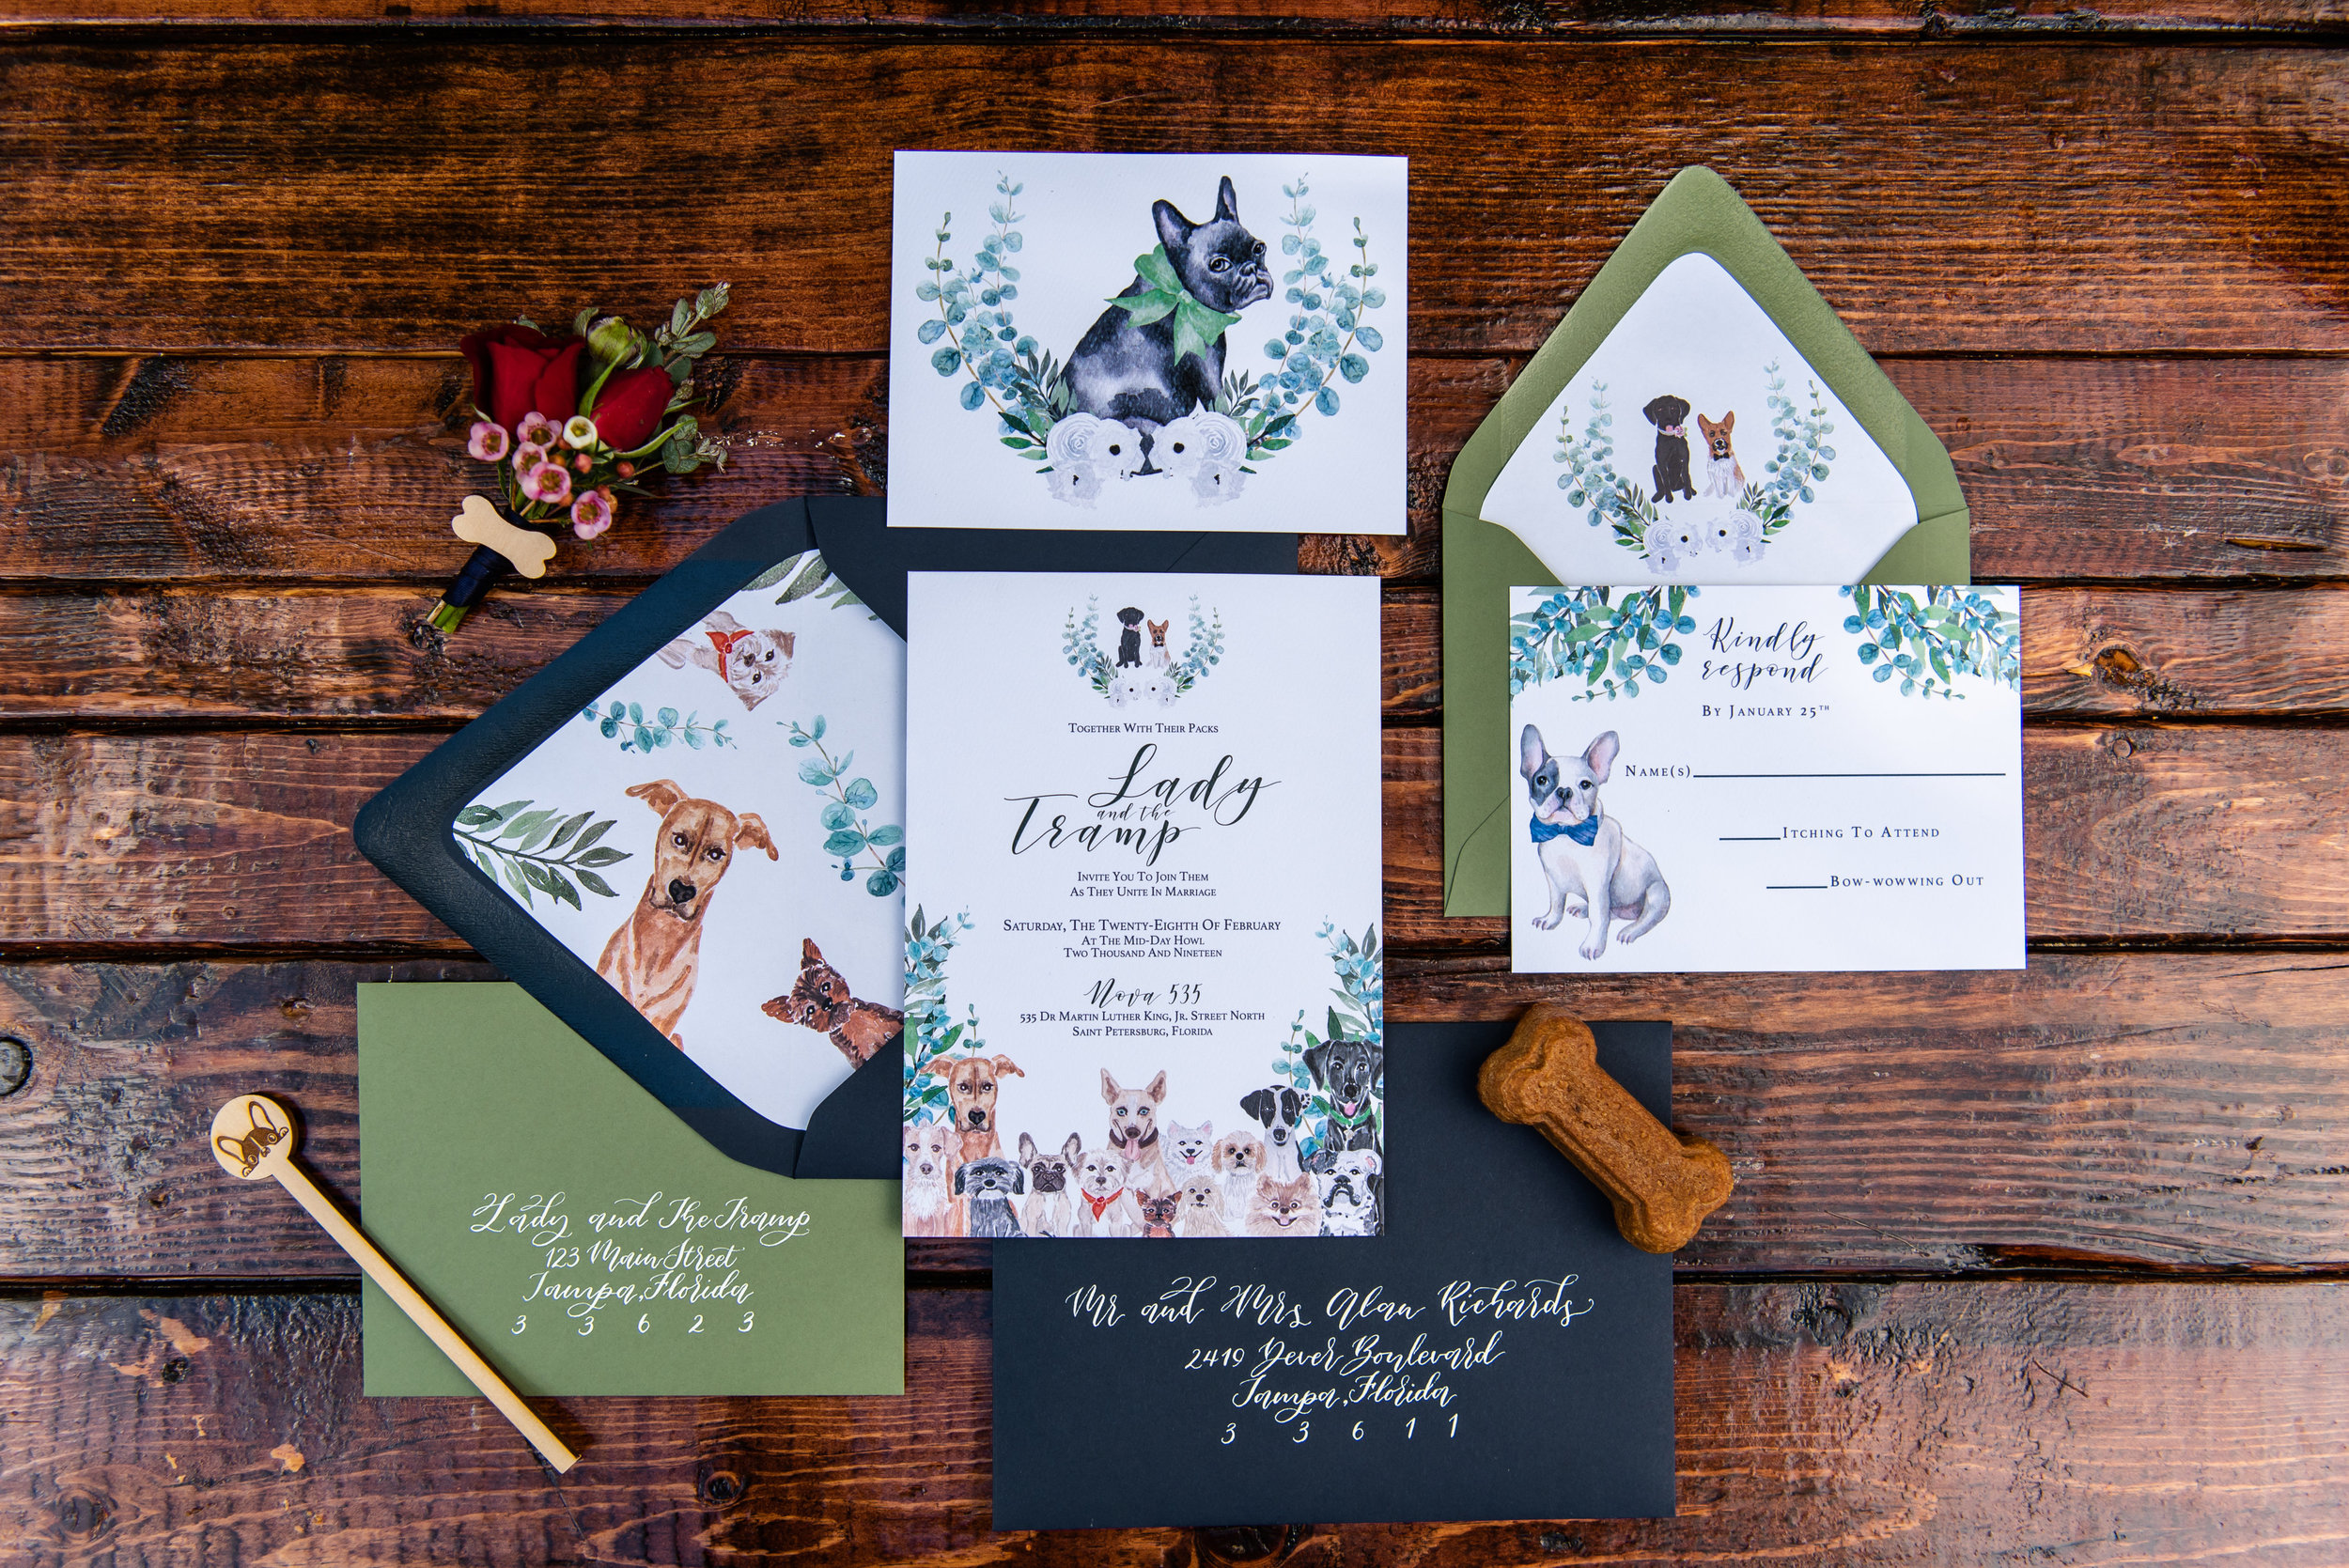 Photo by  Caroline & Evan Photography  at  Nova 535  in St Pete, FL / Invitations by  Sarah Bubarb Designs